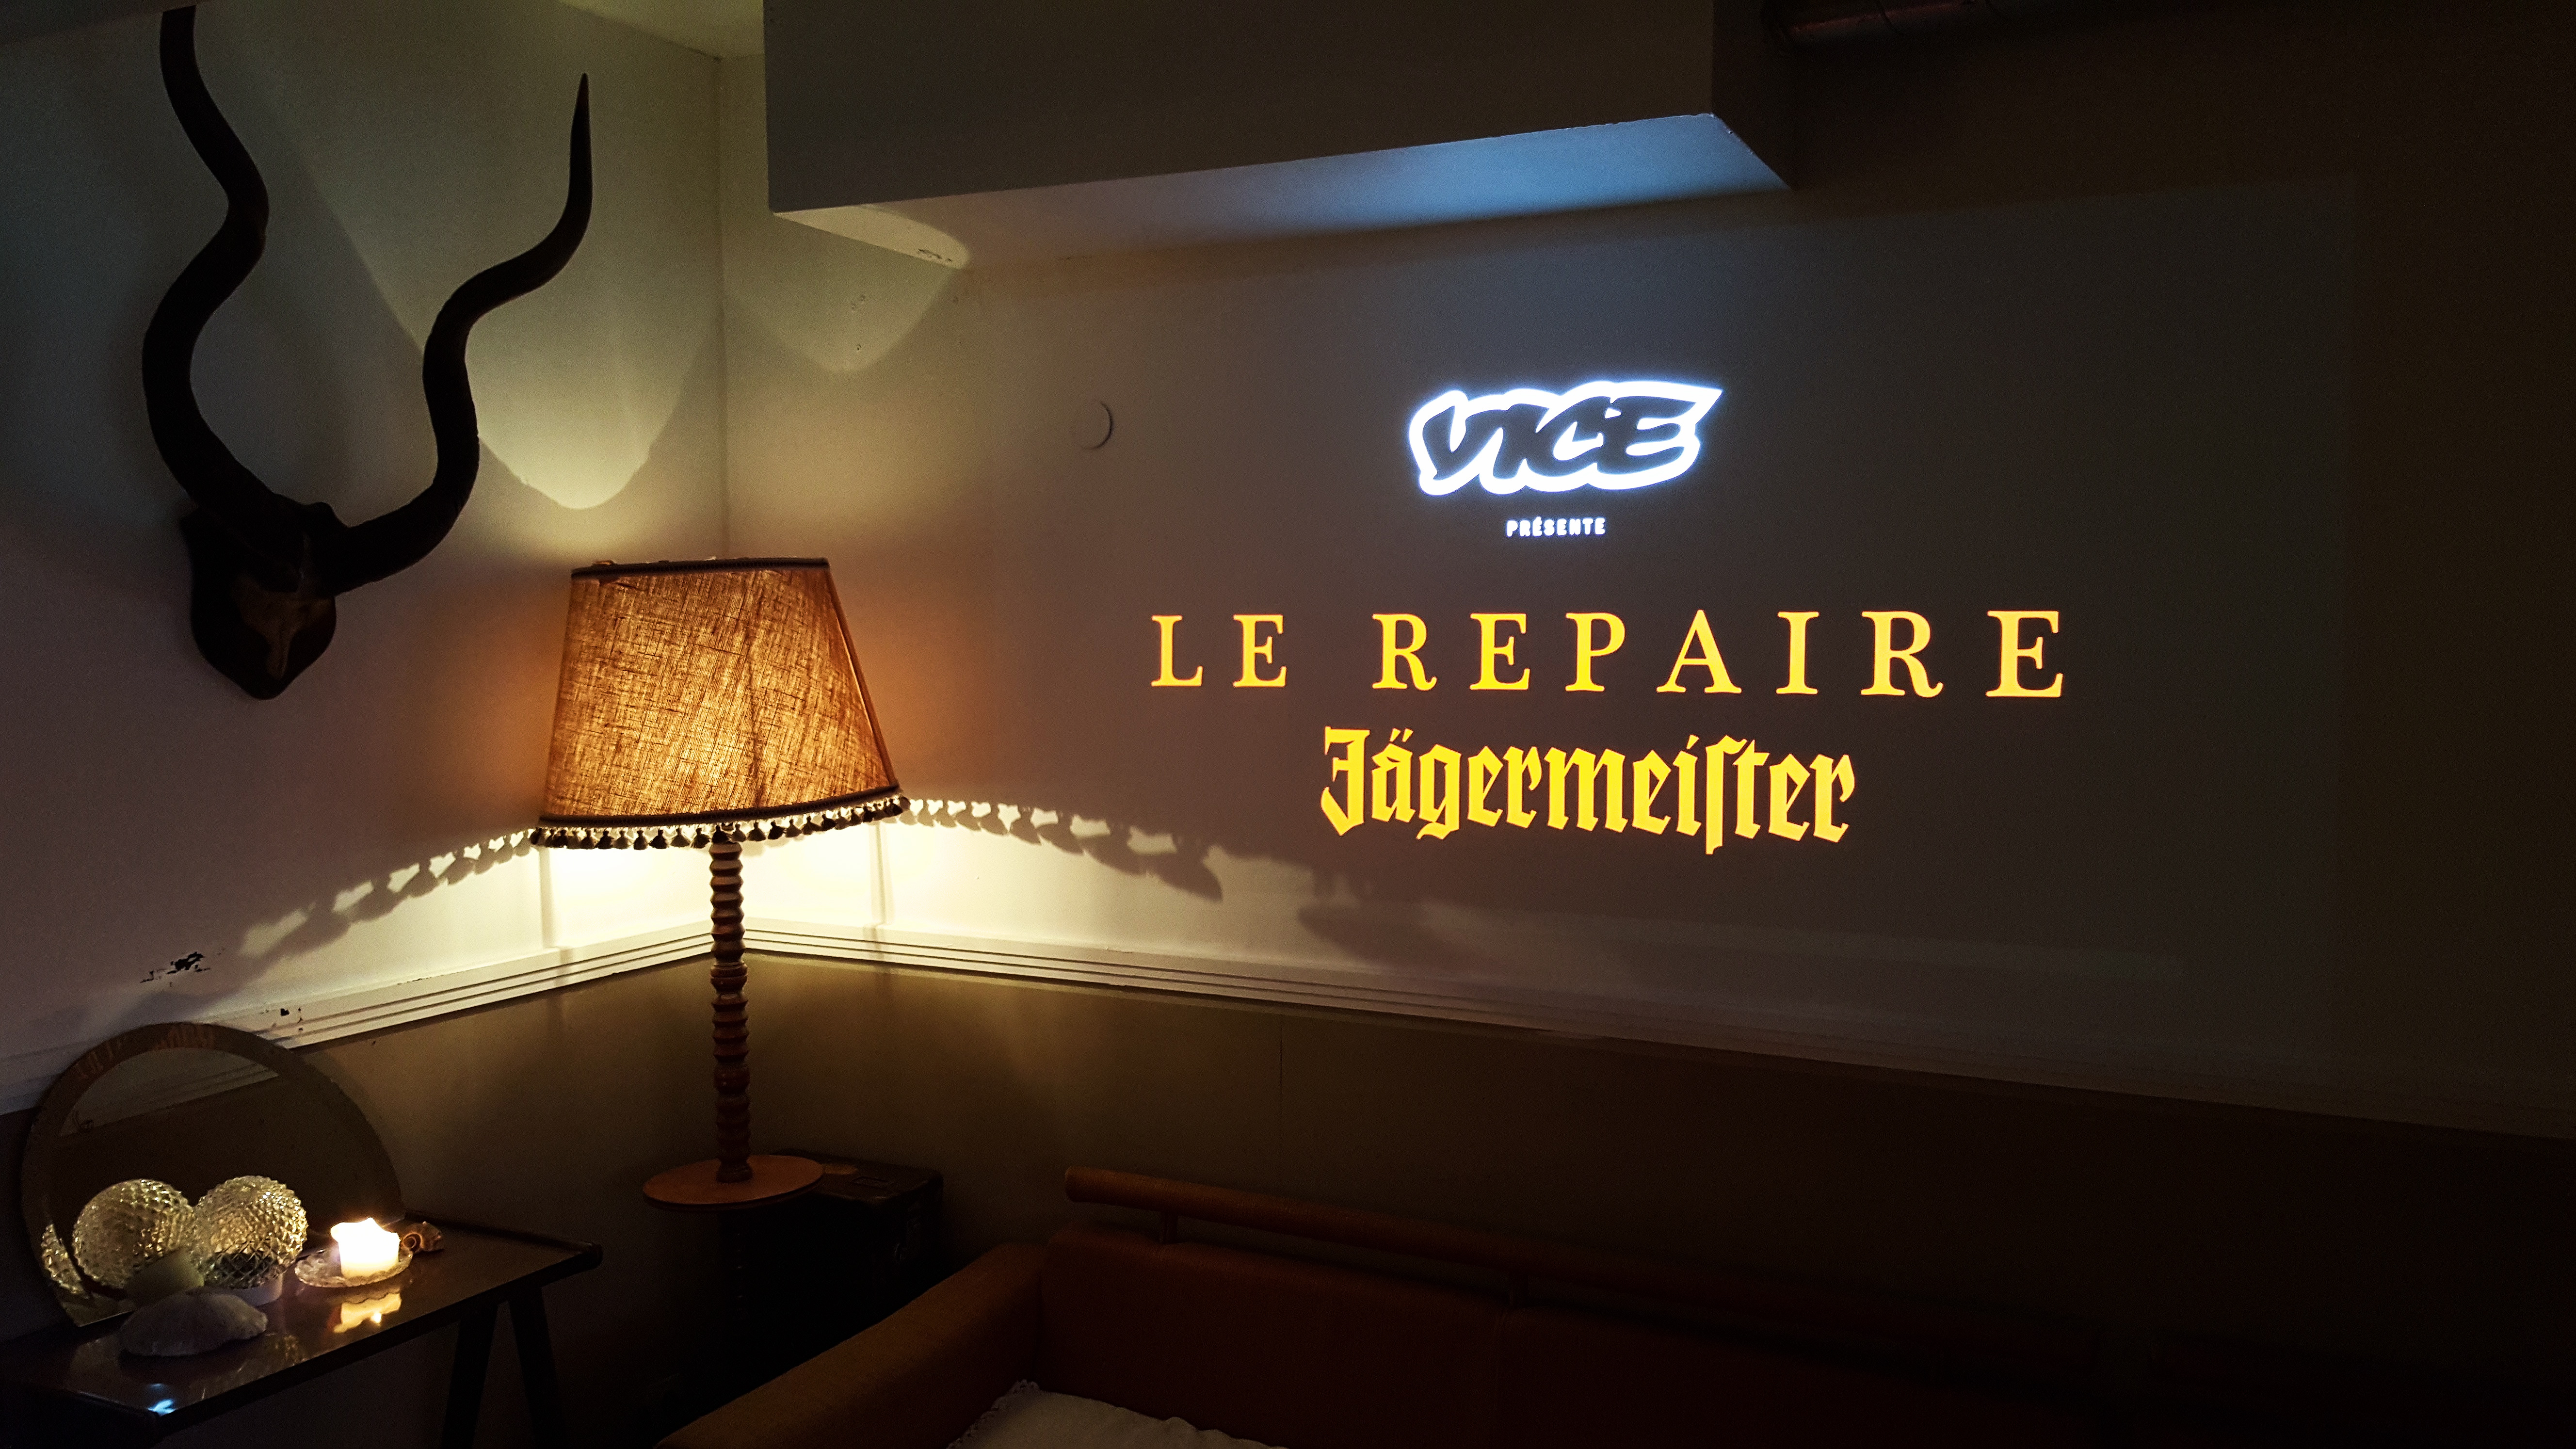 Le Repaire Jagermeister Vice